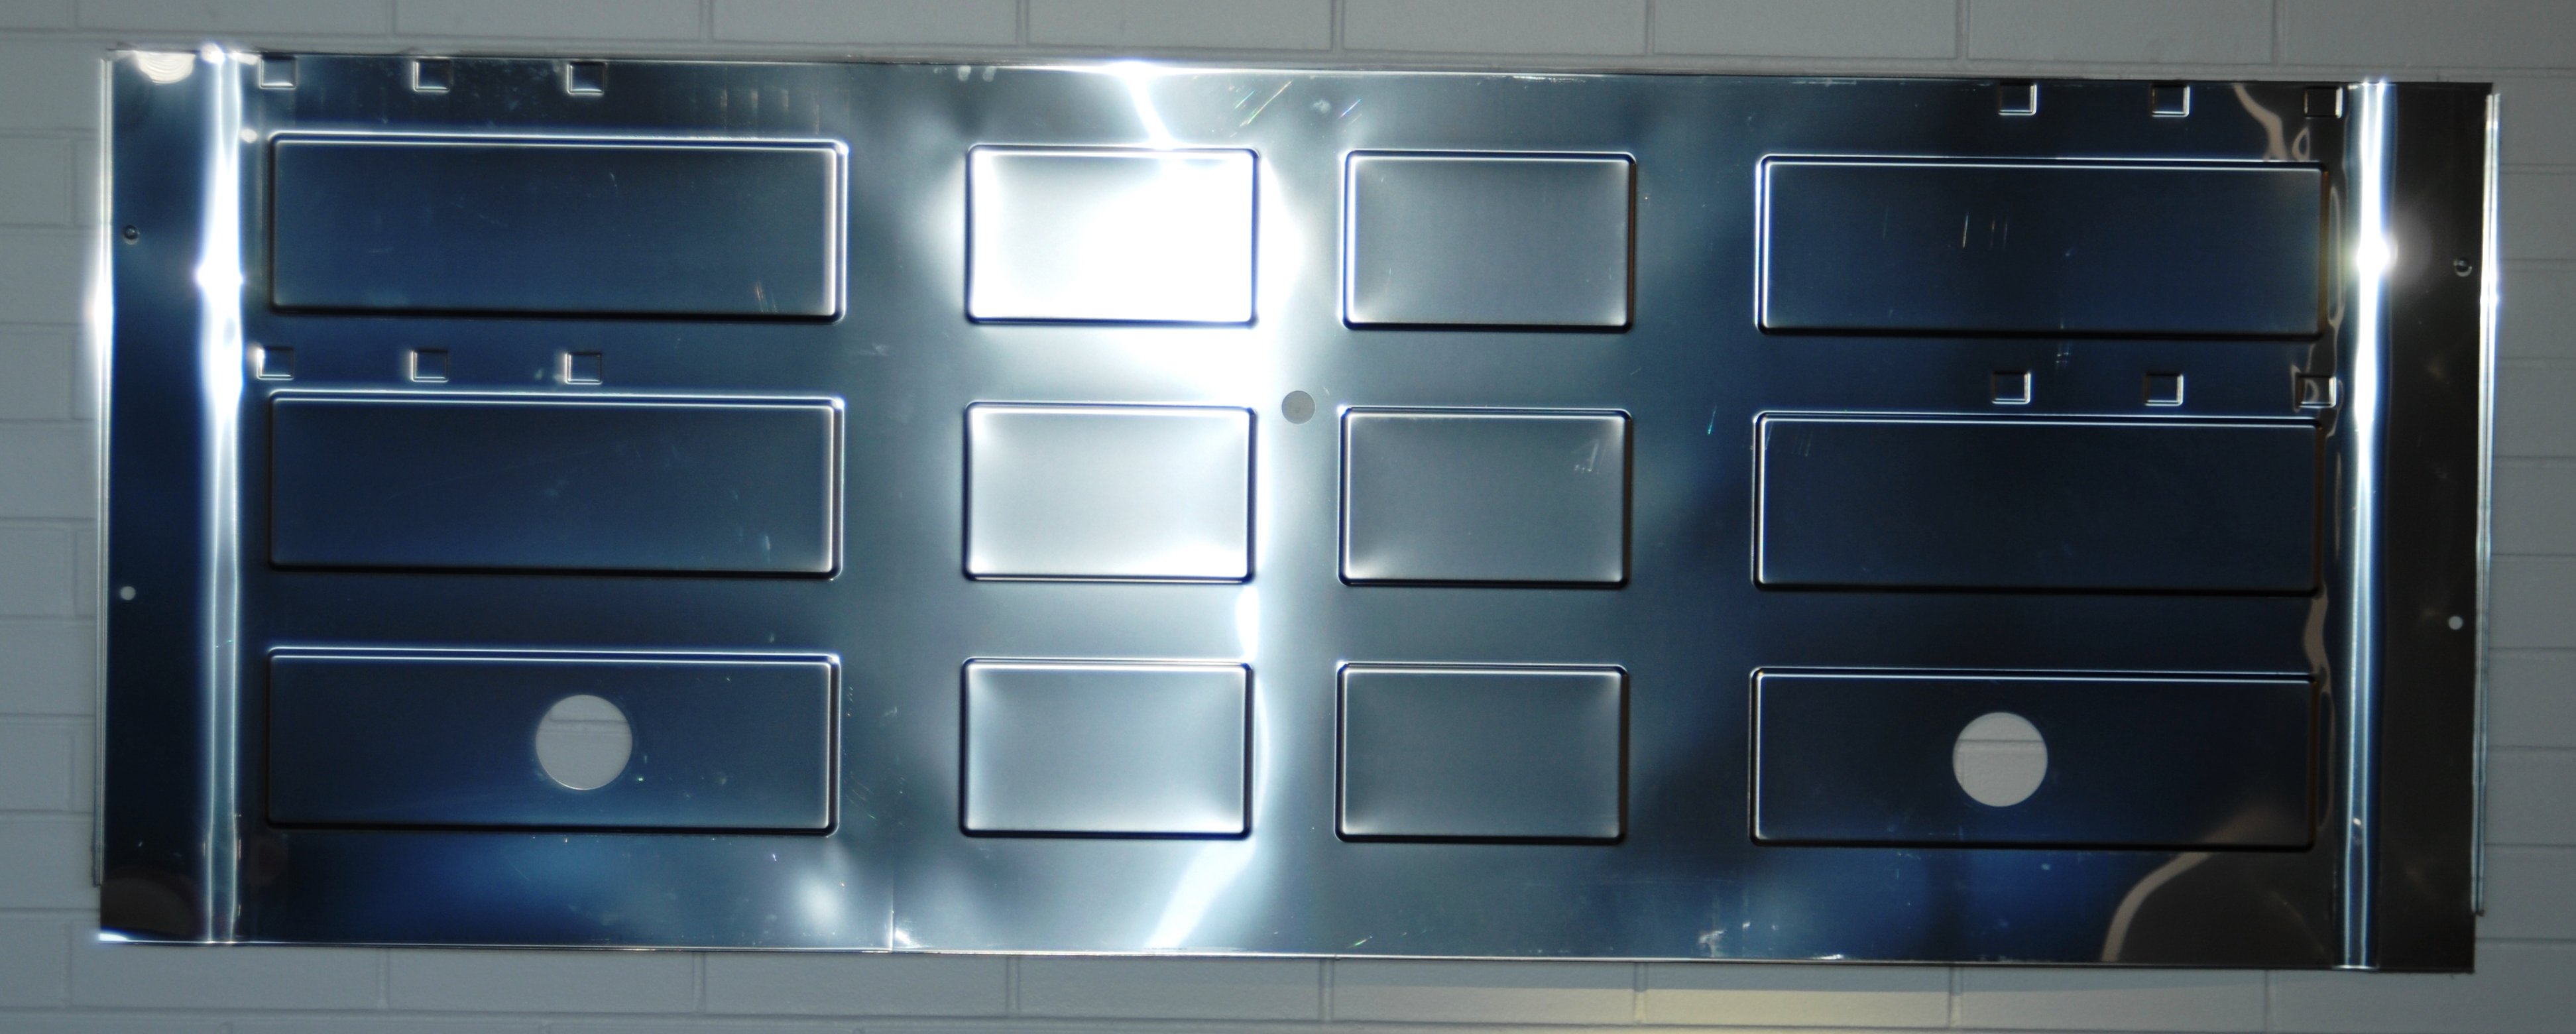 Stainless Steel Dishwasher First Stage Stamping